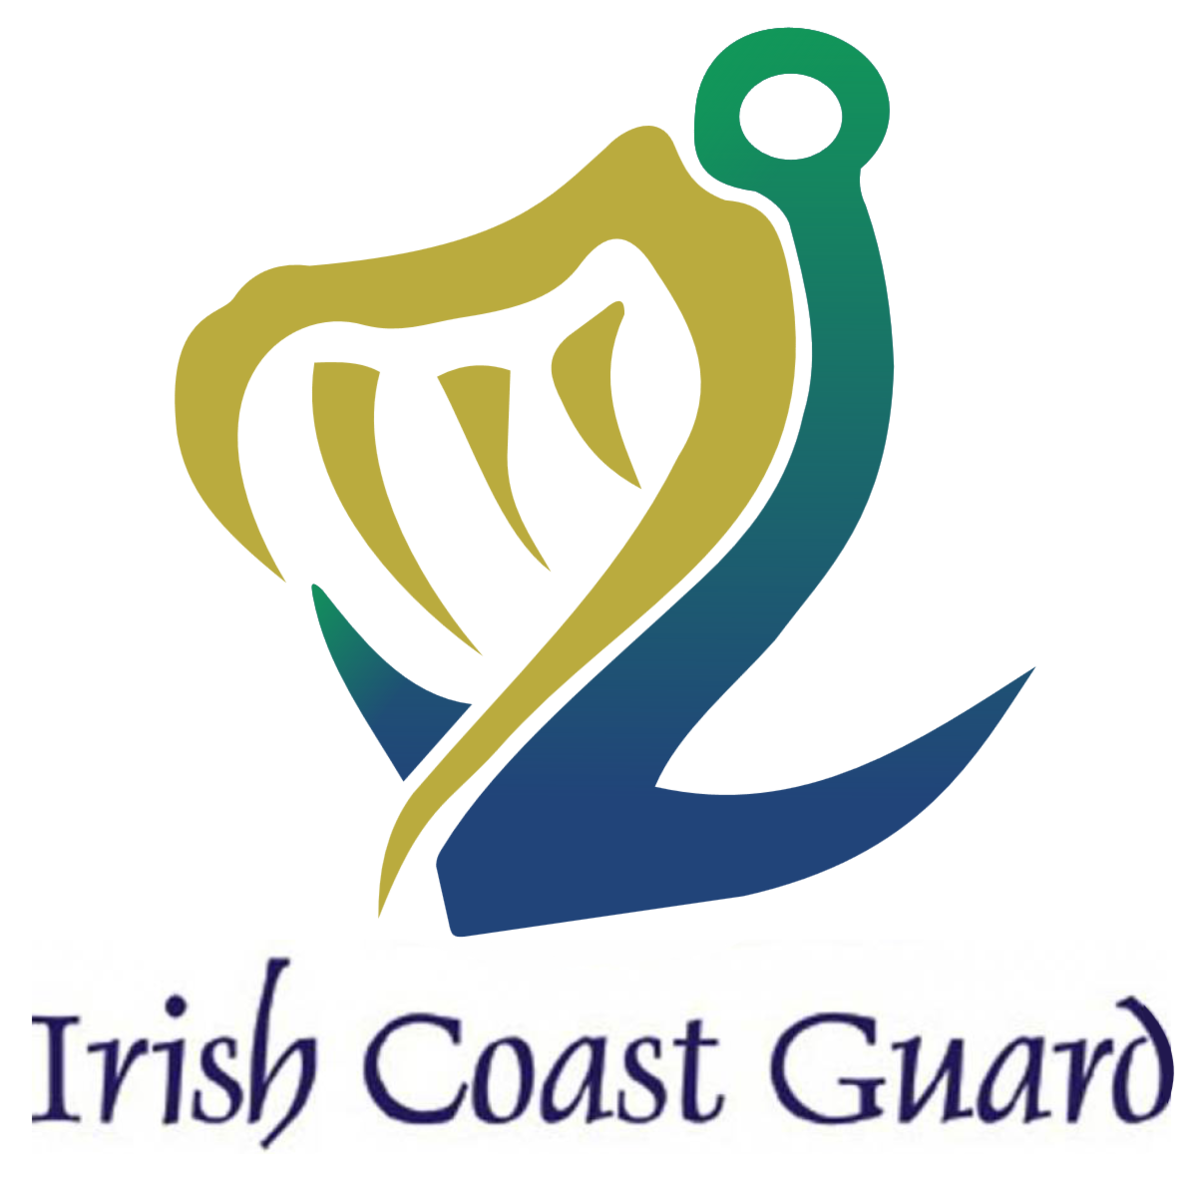 irish coast guard 2020